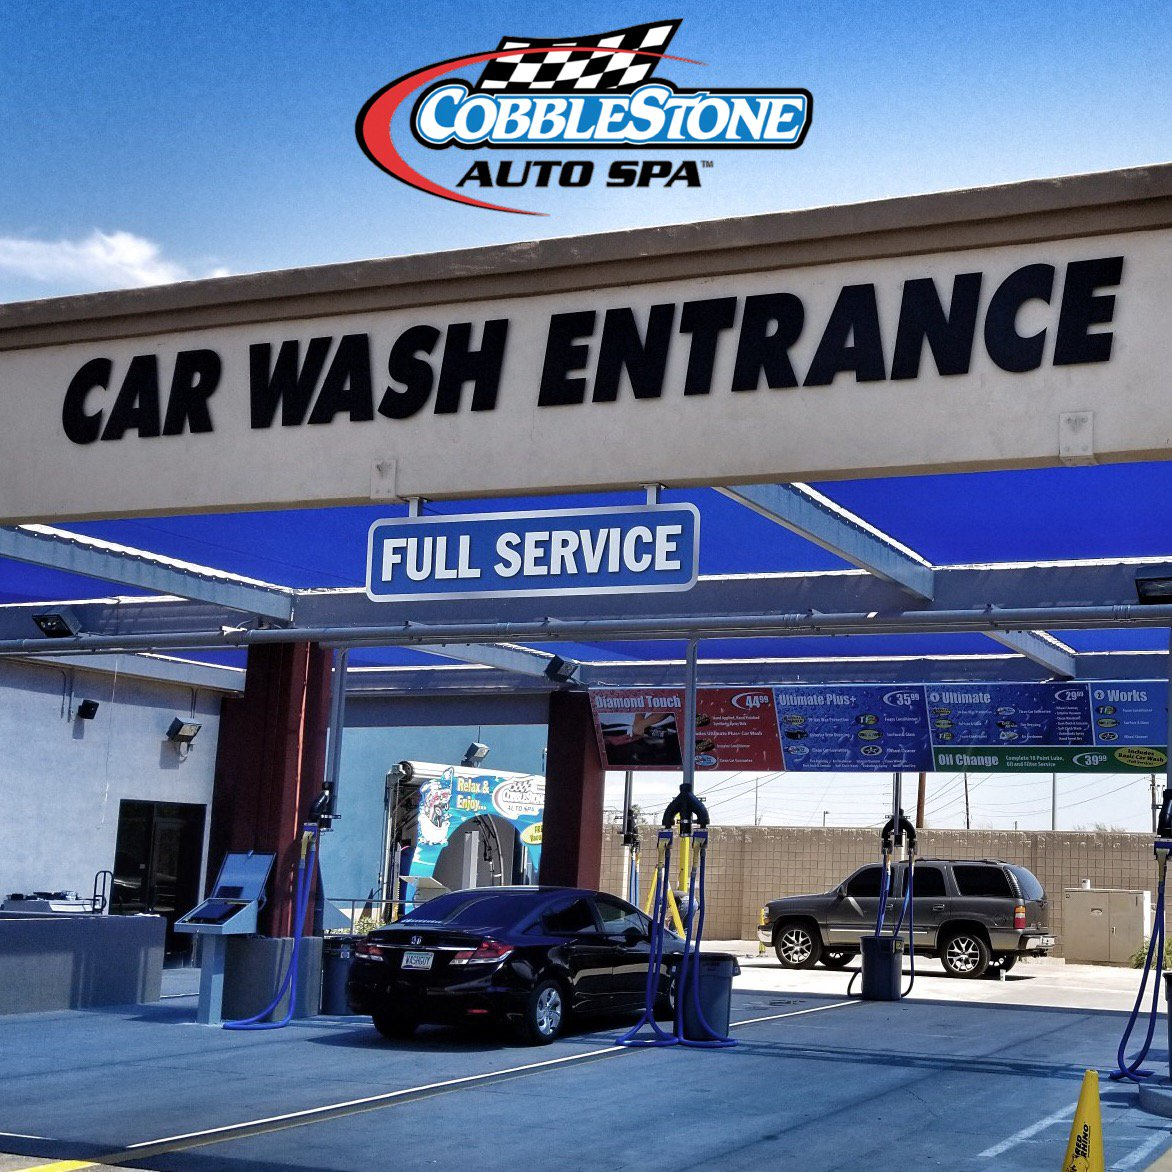 Cobblestone Auto Spa on Twitter: